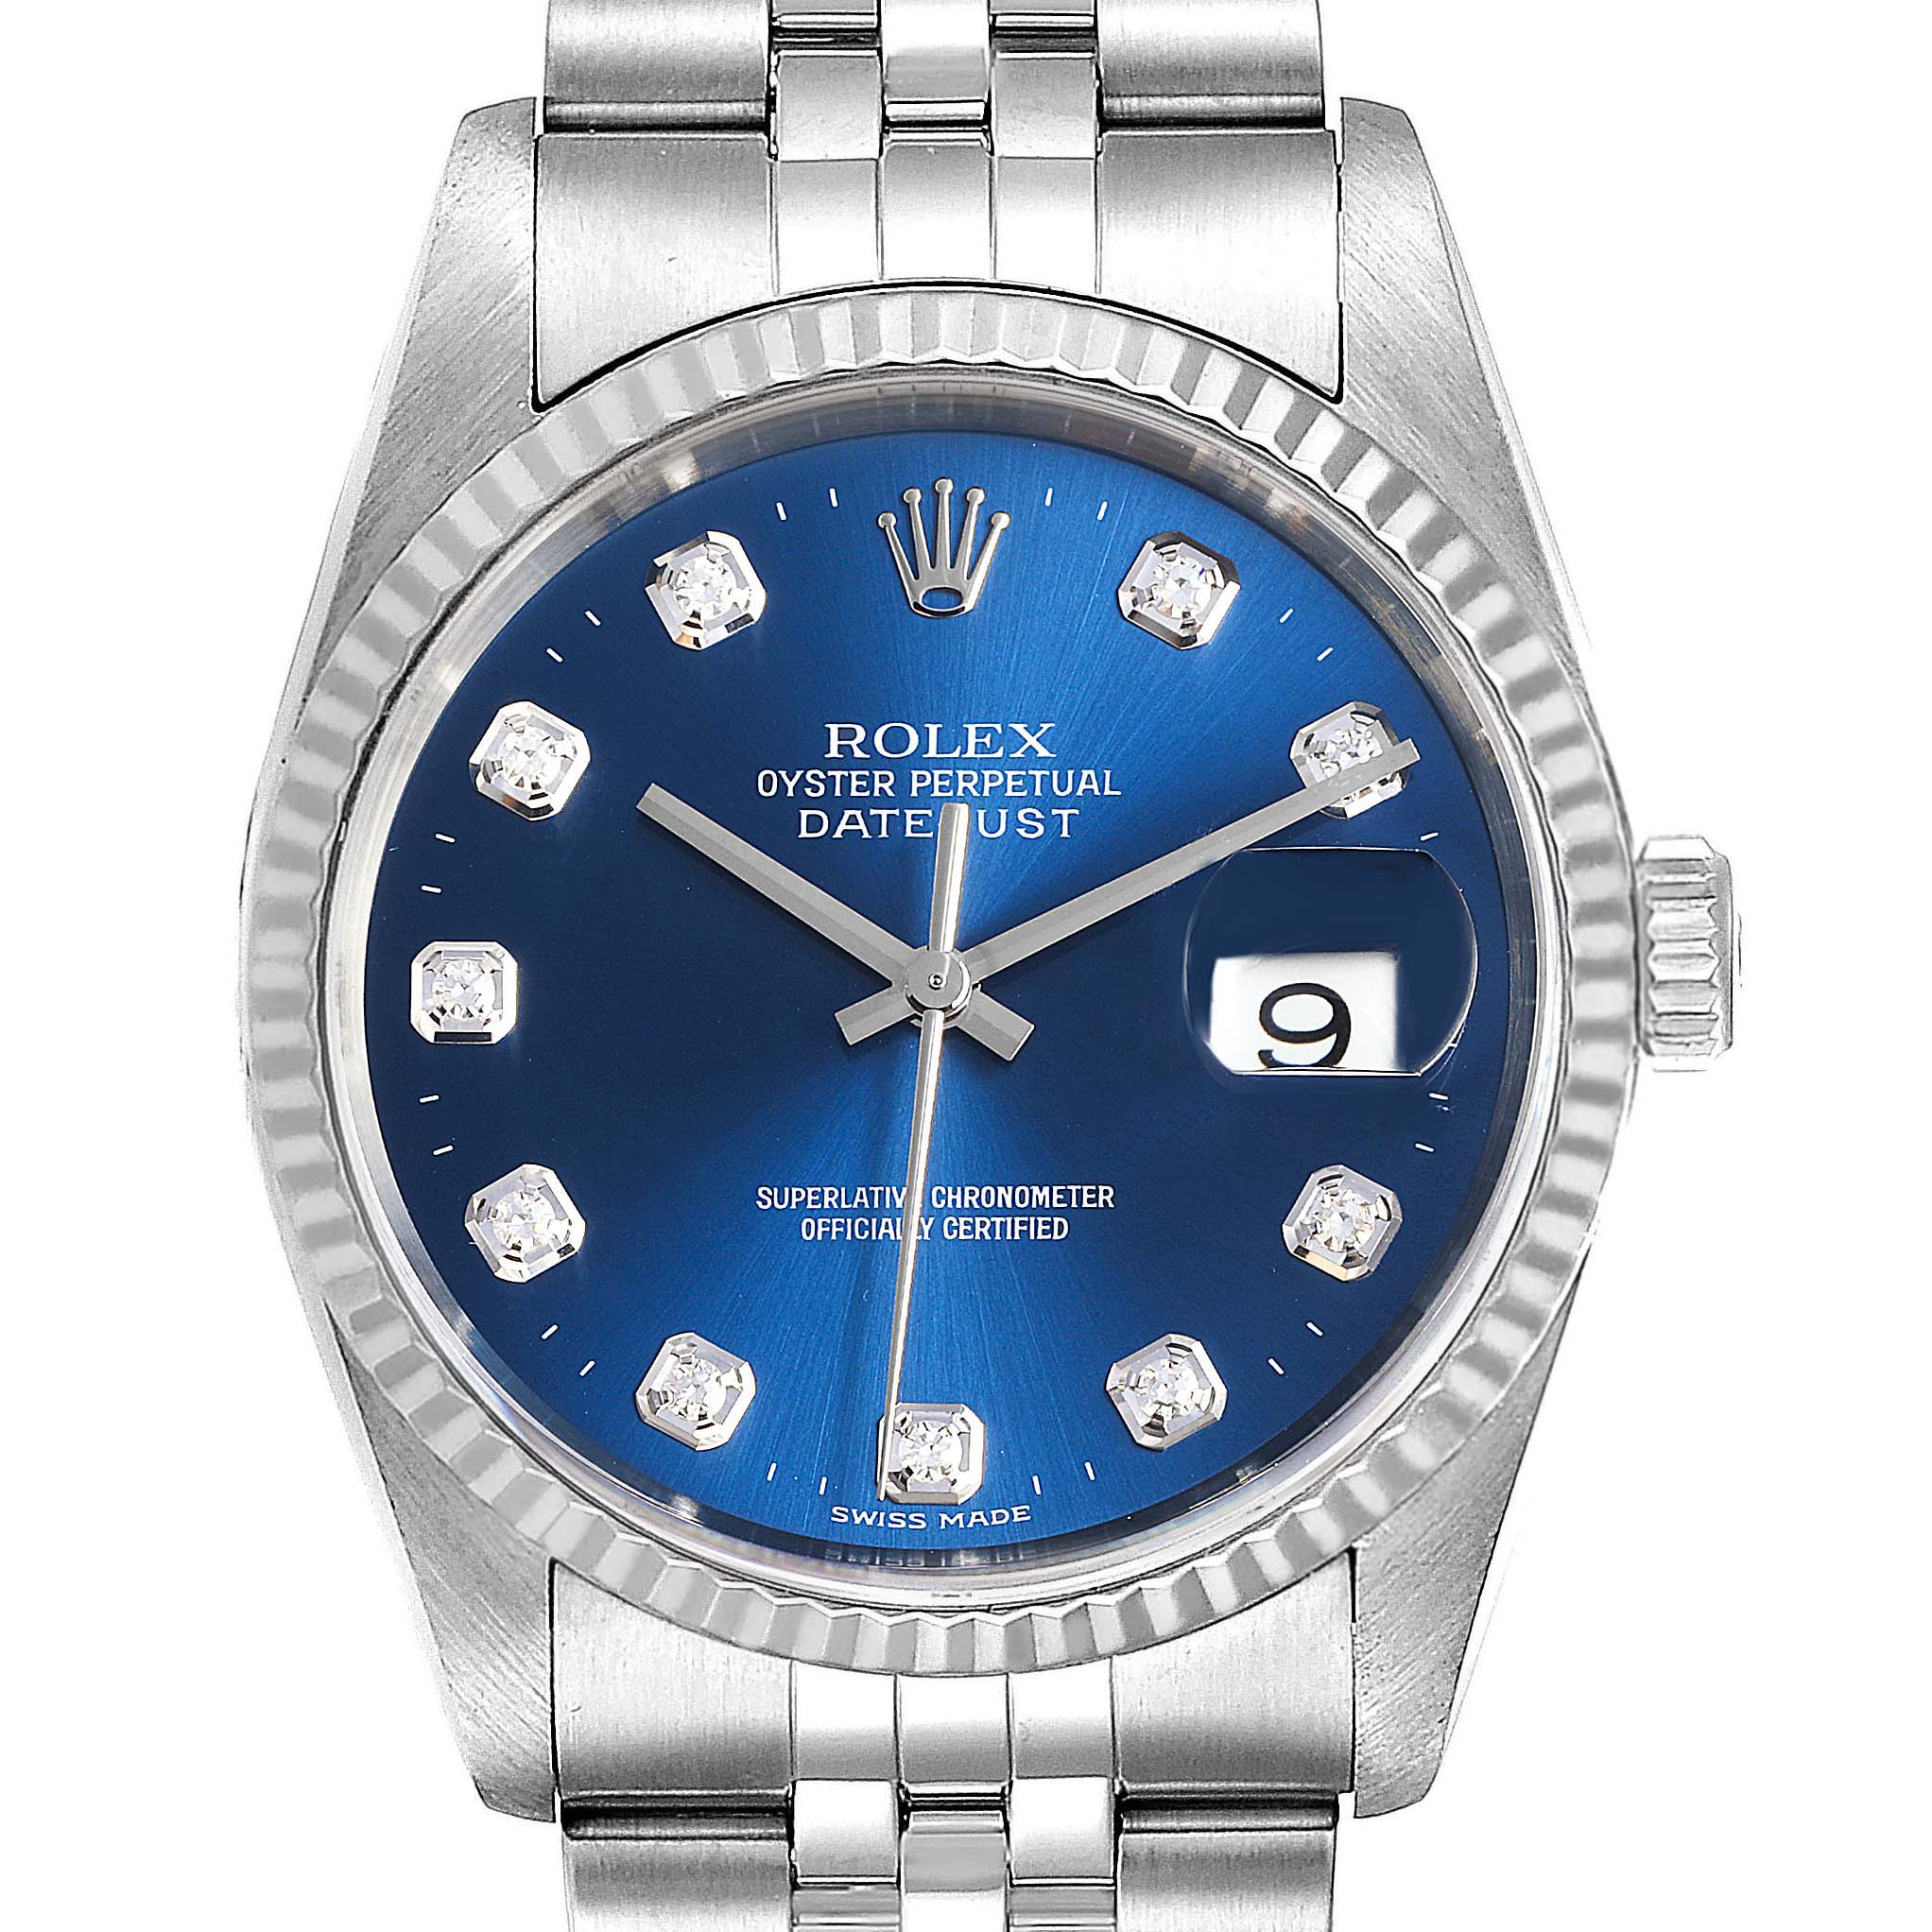 Photo of Rolex Datejust 36 Steel White Gold Blue Diamond Dial Mens Watch 16234